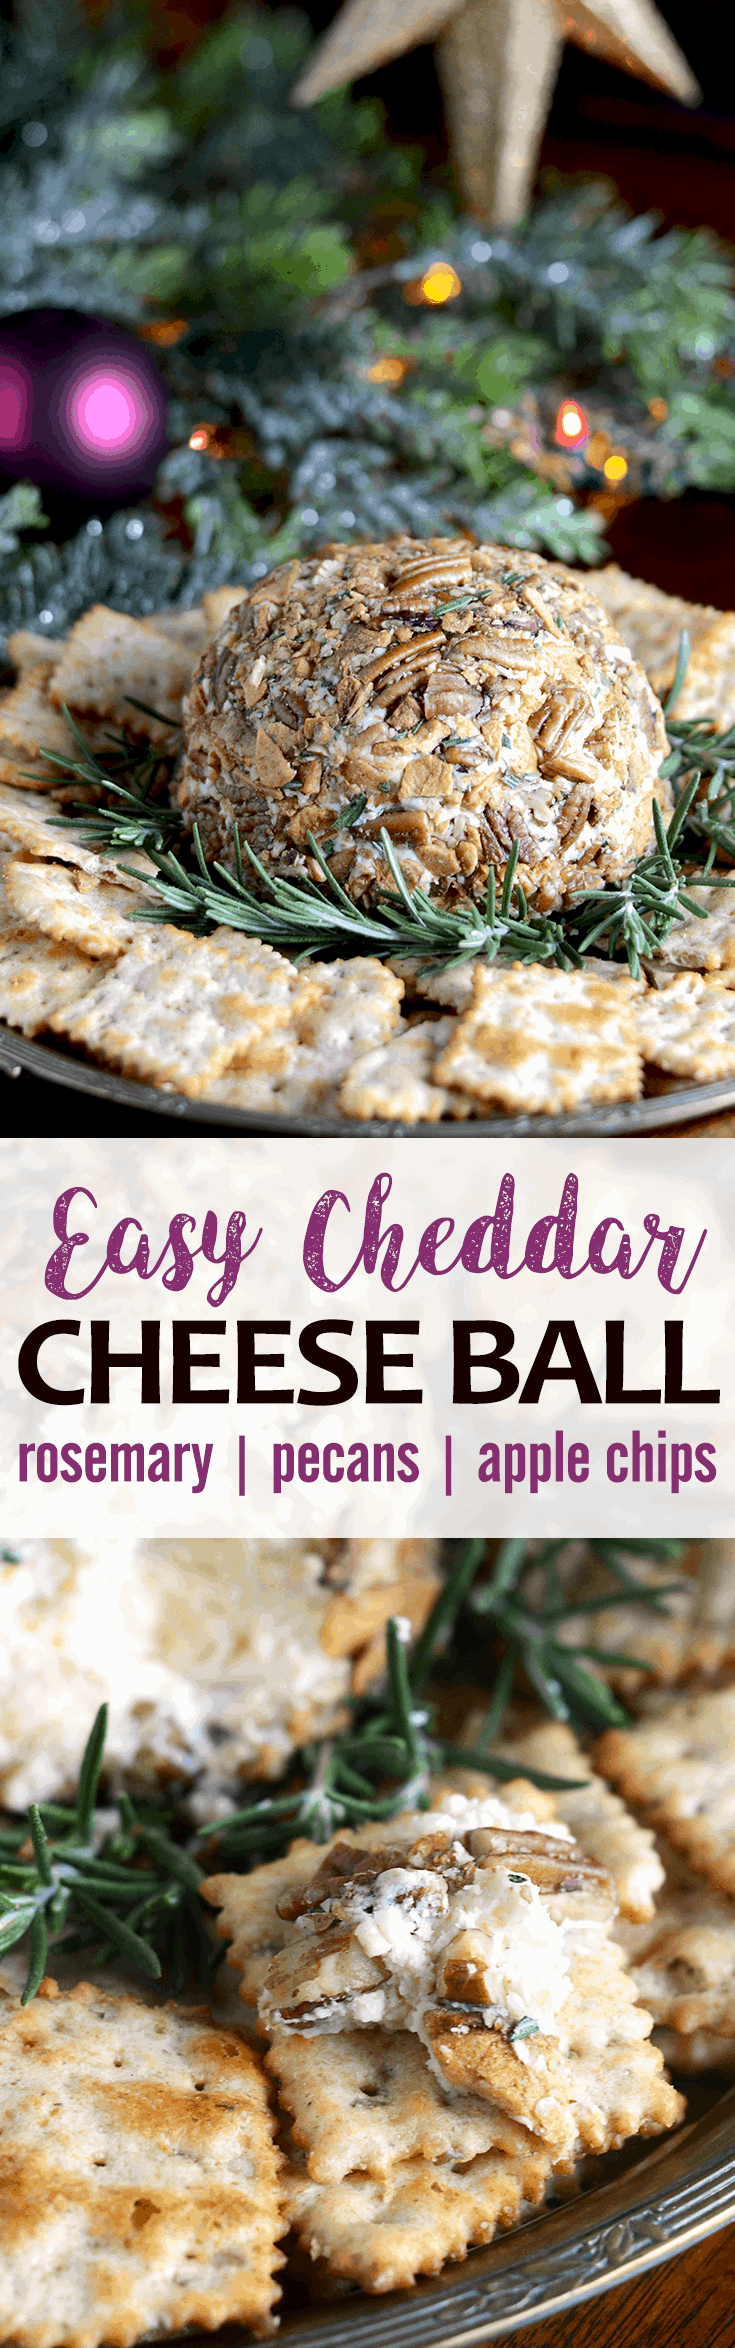 Aged cheddar is combined with cream cheese and rolled in butter roasted apple chips and pecans with a sprinkle of fresh rosemary. Just 7 ingredients for this no fuss, delicious recipe. Great for #holiday parties!